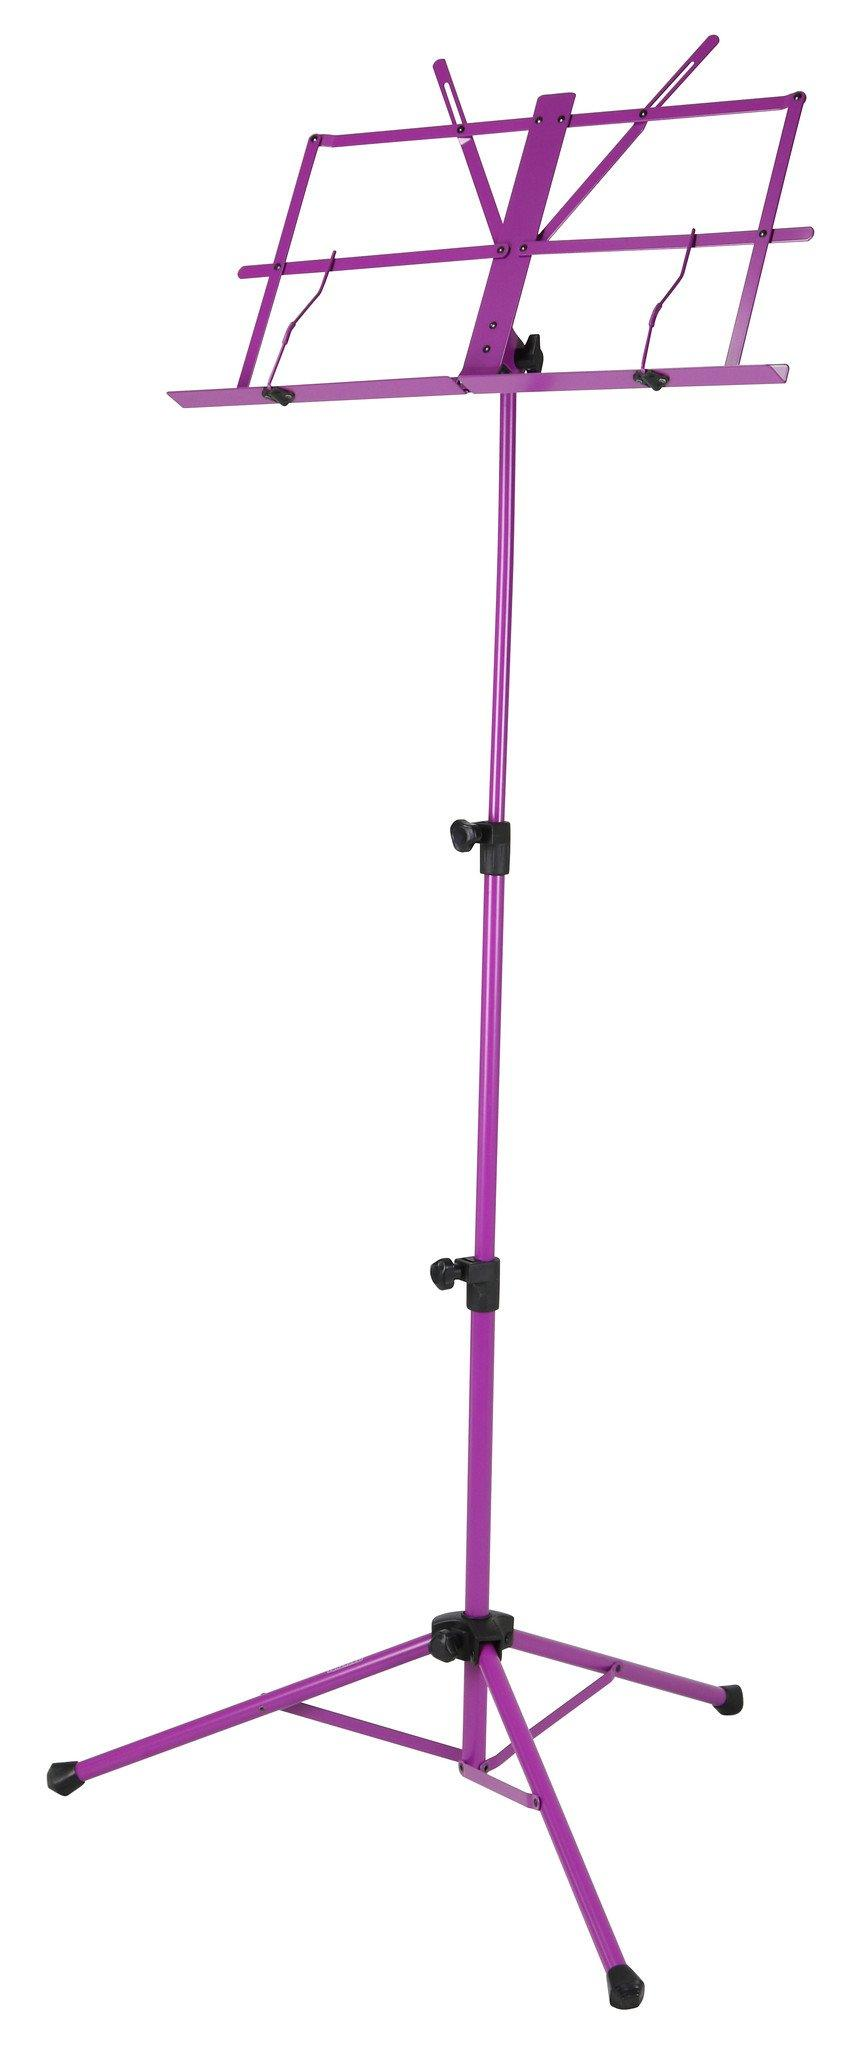 Deluxe 3-Part Folding Music Stand W/Bag - Purple